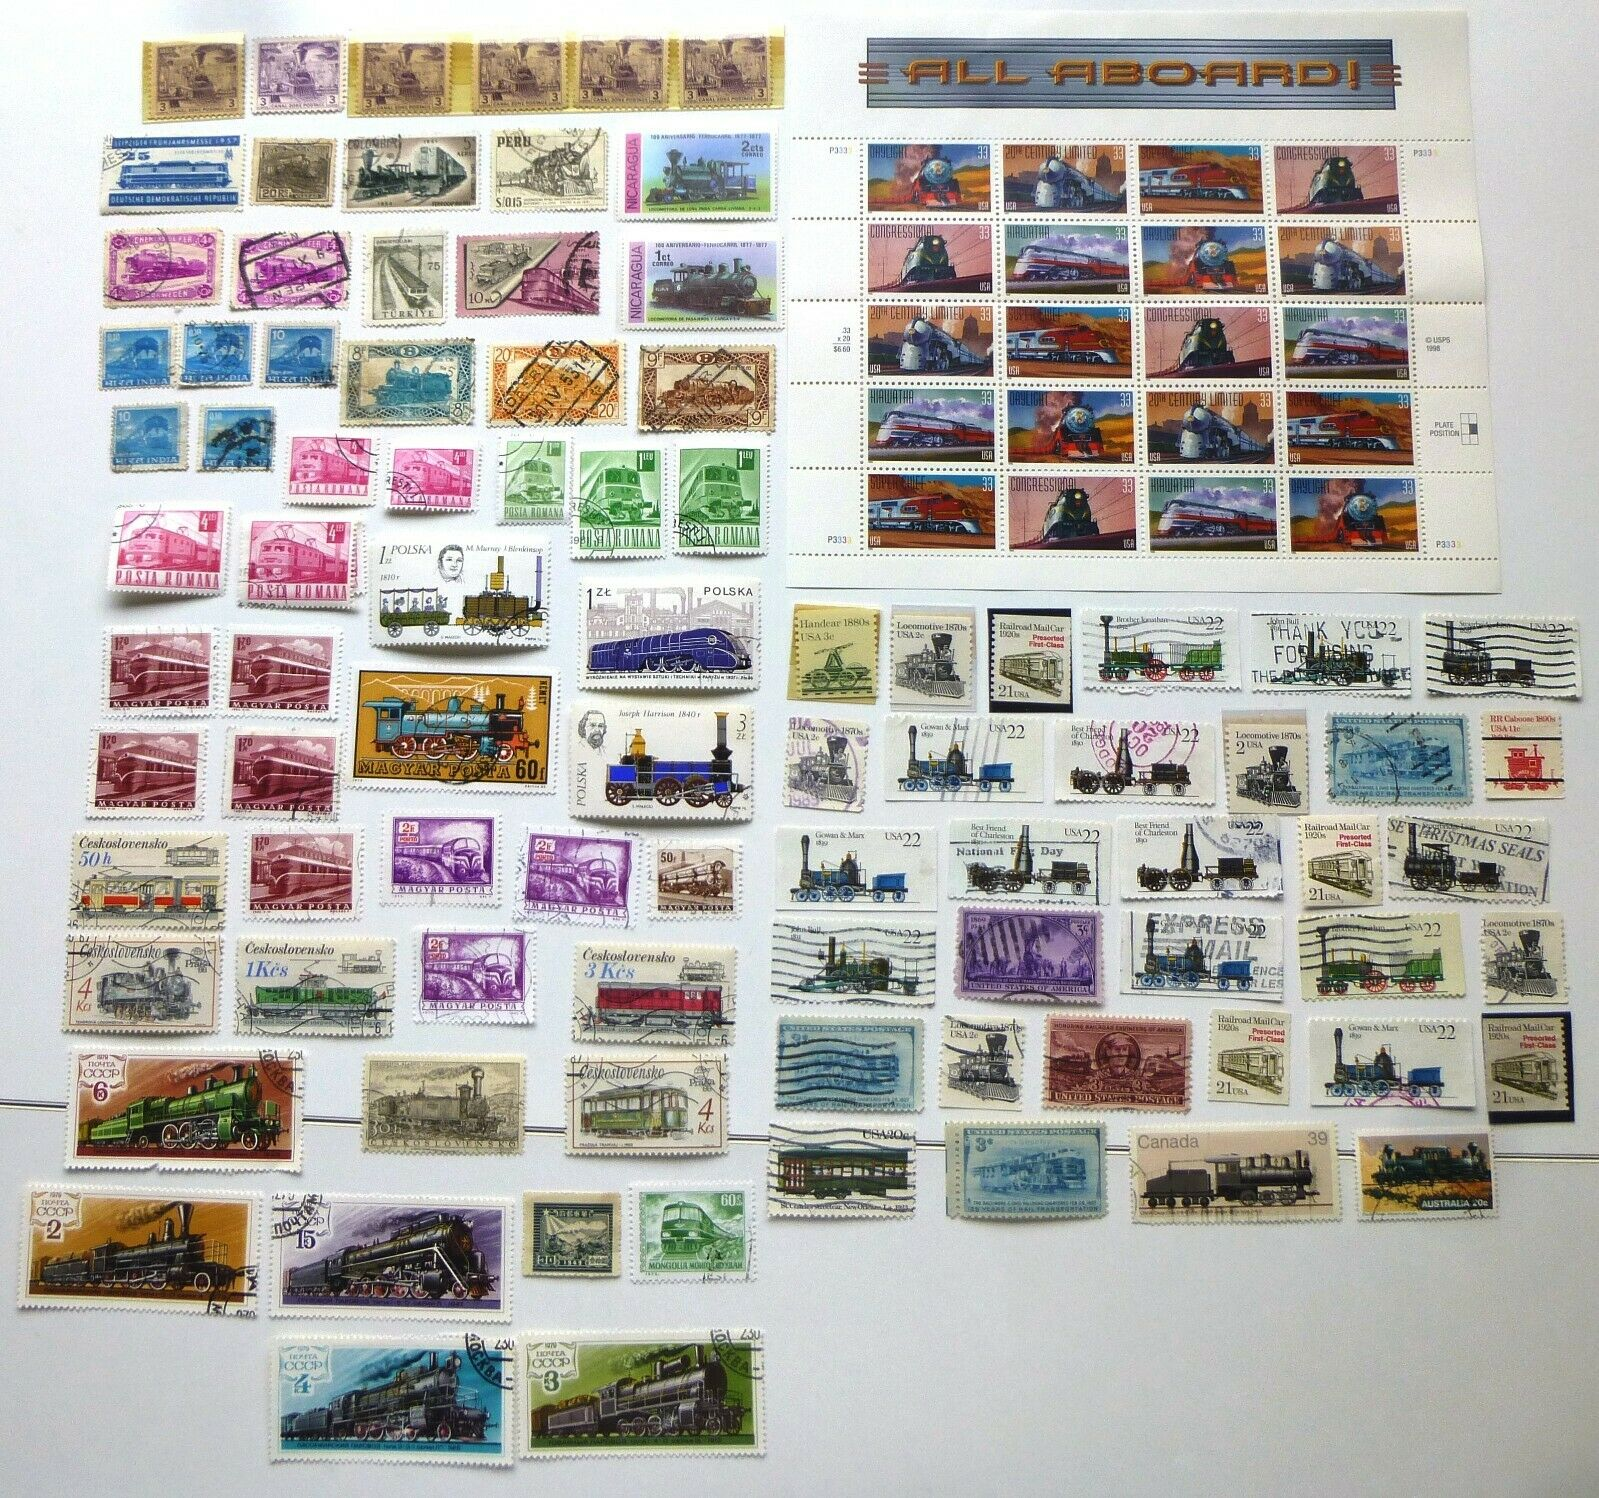 TRAIN STAMPS FROM AROUND THE WORLD MNH USED UNC 110 - $2.99